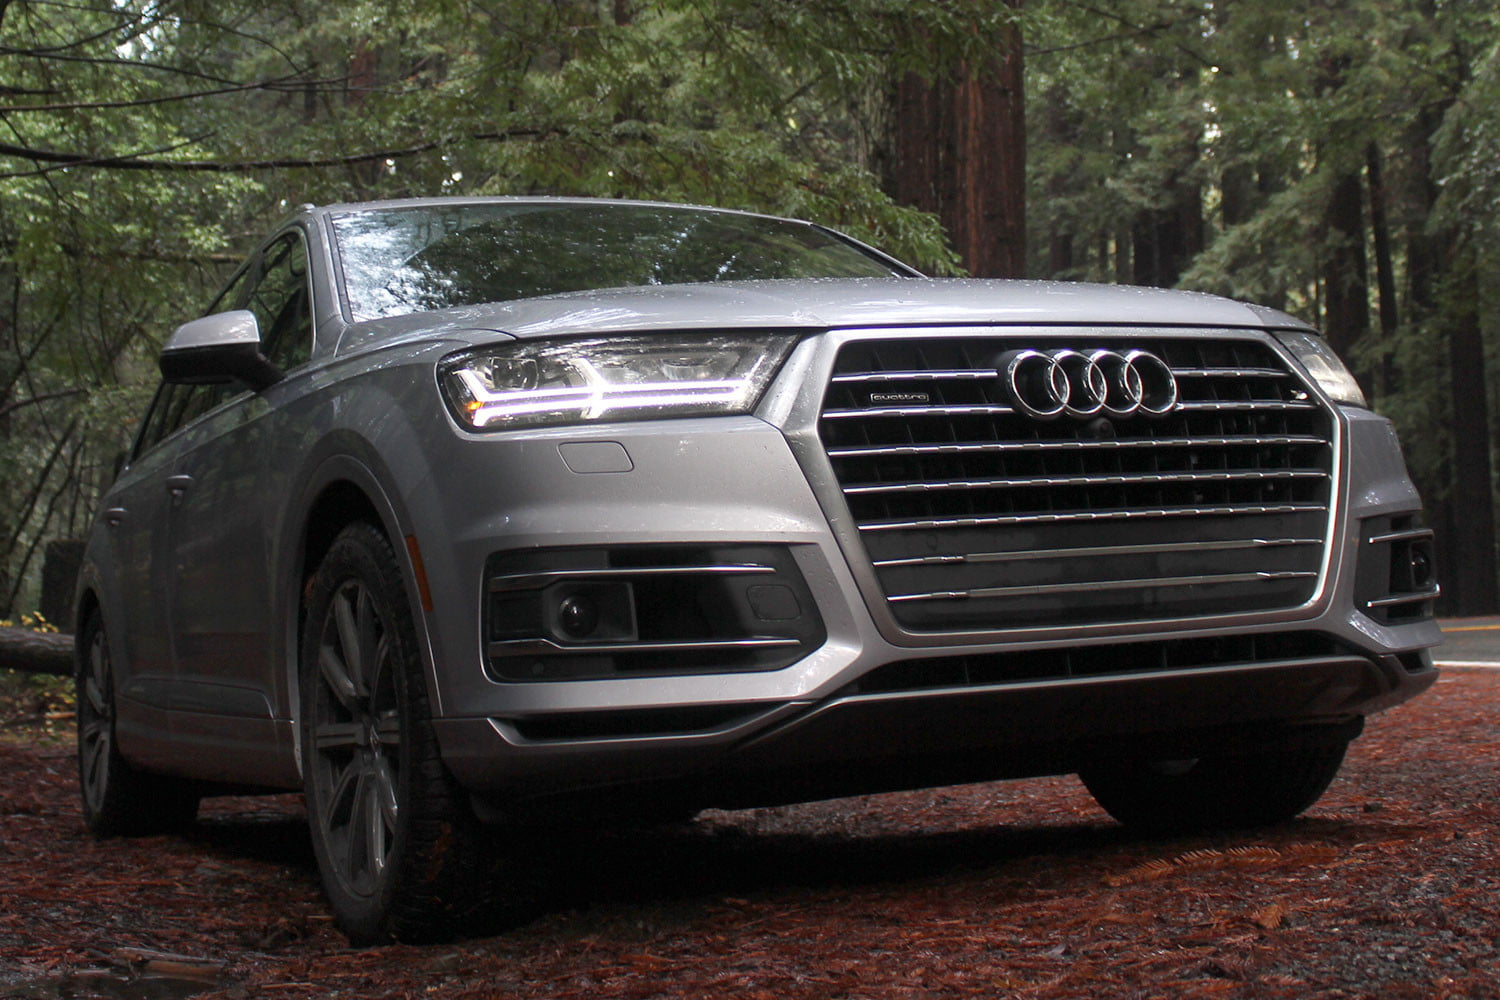 2017 audi q7 first drive review digital trends. Black Bedroom Furniture Sets. Home Design Ideas